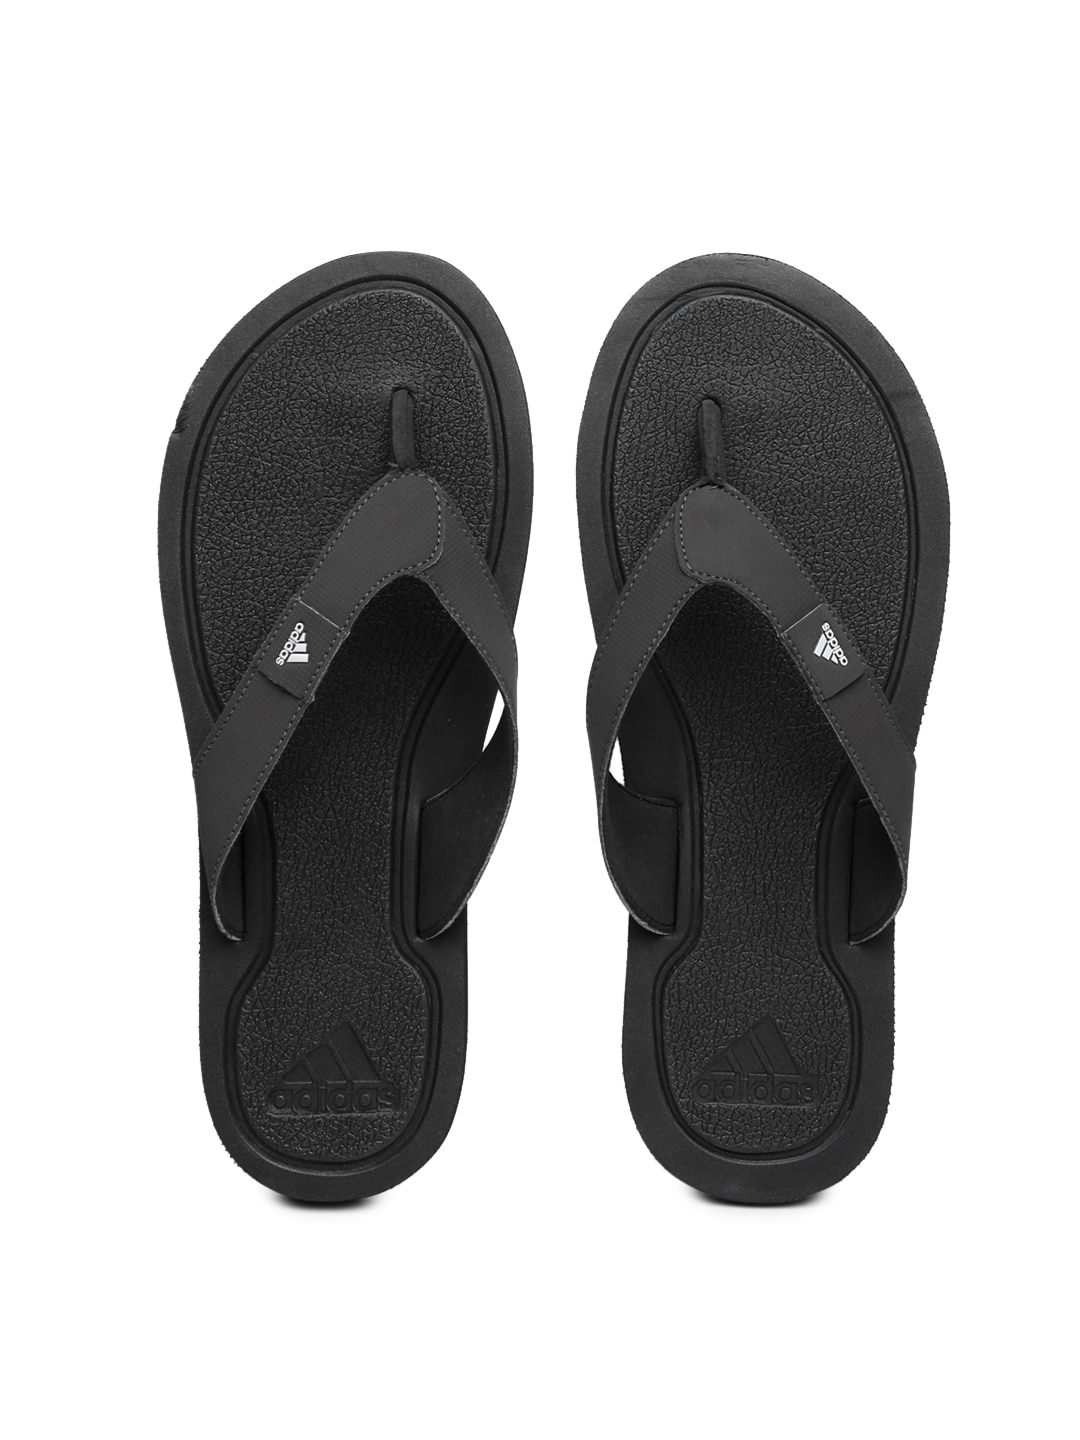 19f2863b5130 Buy adidas men flip flops   OFF72% Discounted